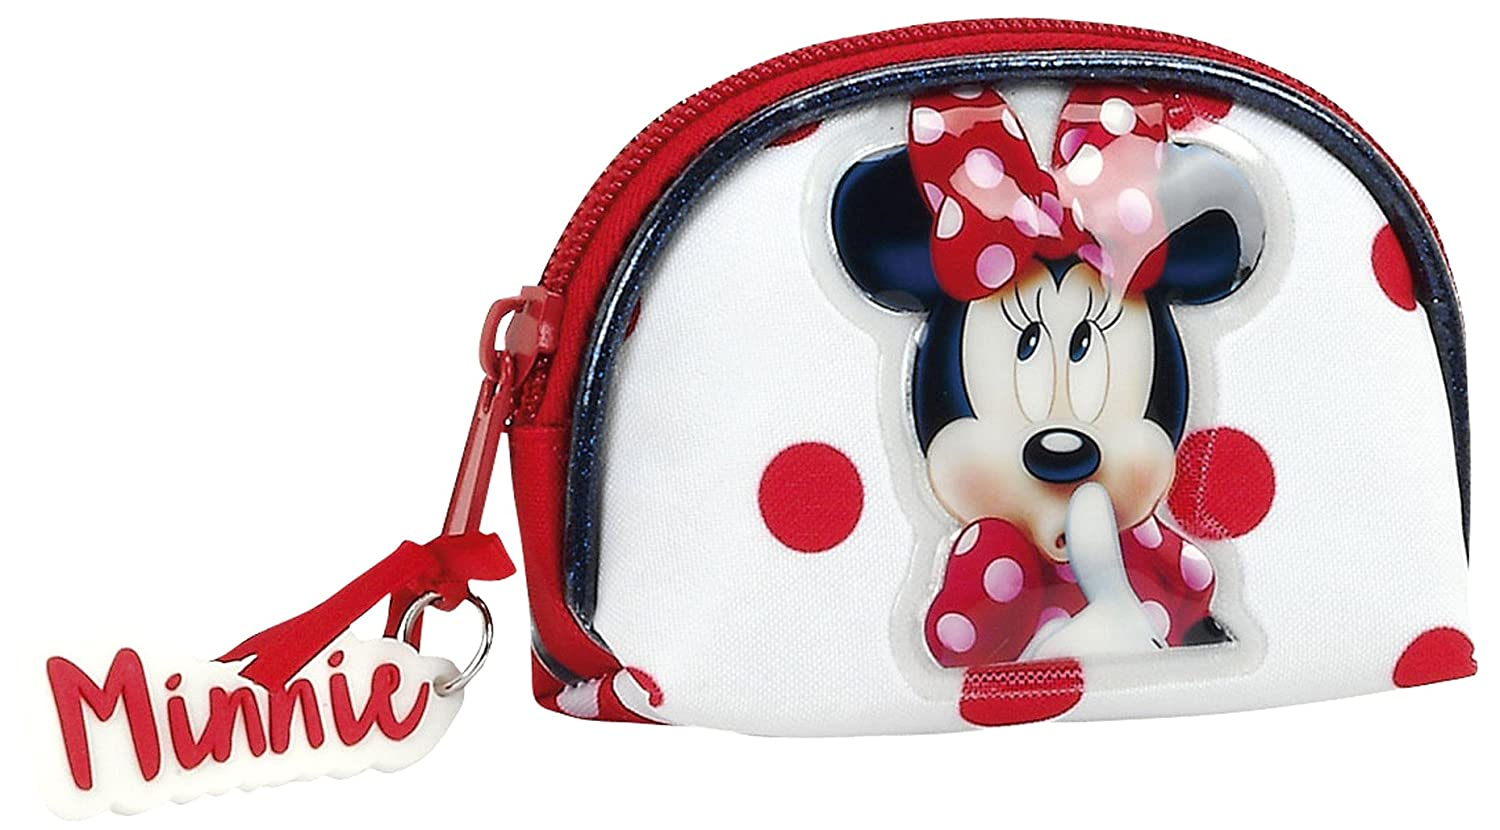 Minnie Mouse Monedero, 10 cm, Rojo y Blanco: Amazon.es: Equipaje